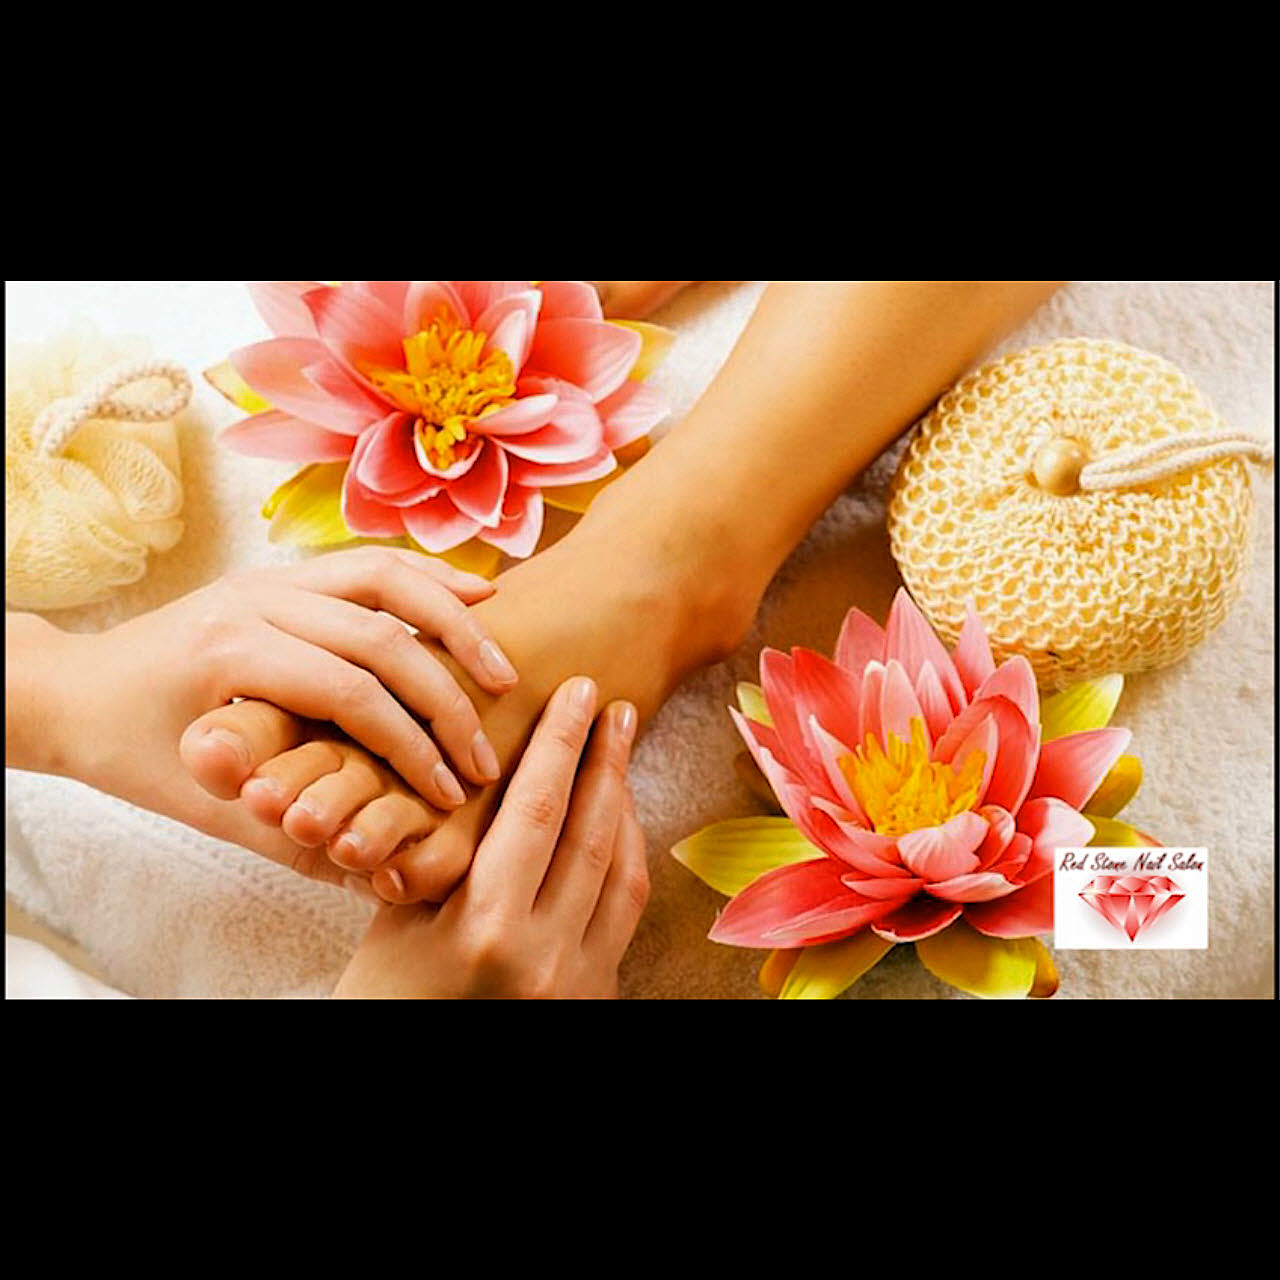 Red Stone Nail Salon - Nail Salons - 705-742-2525